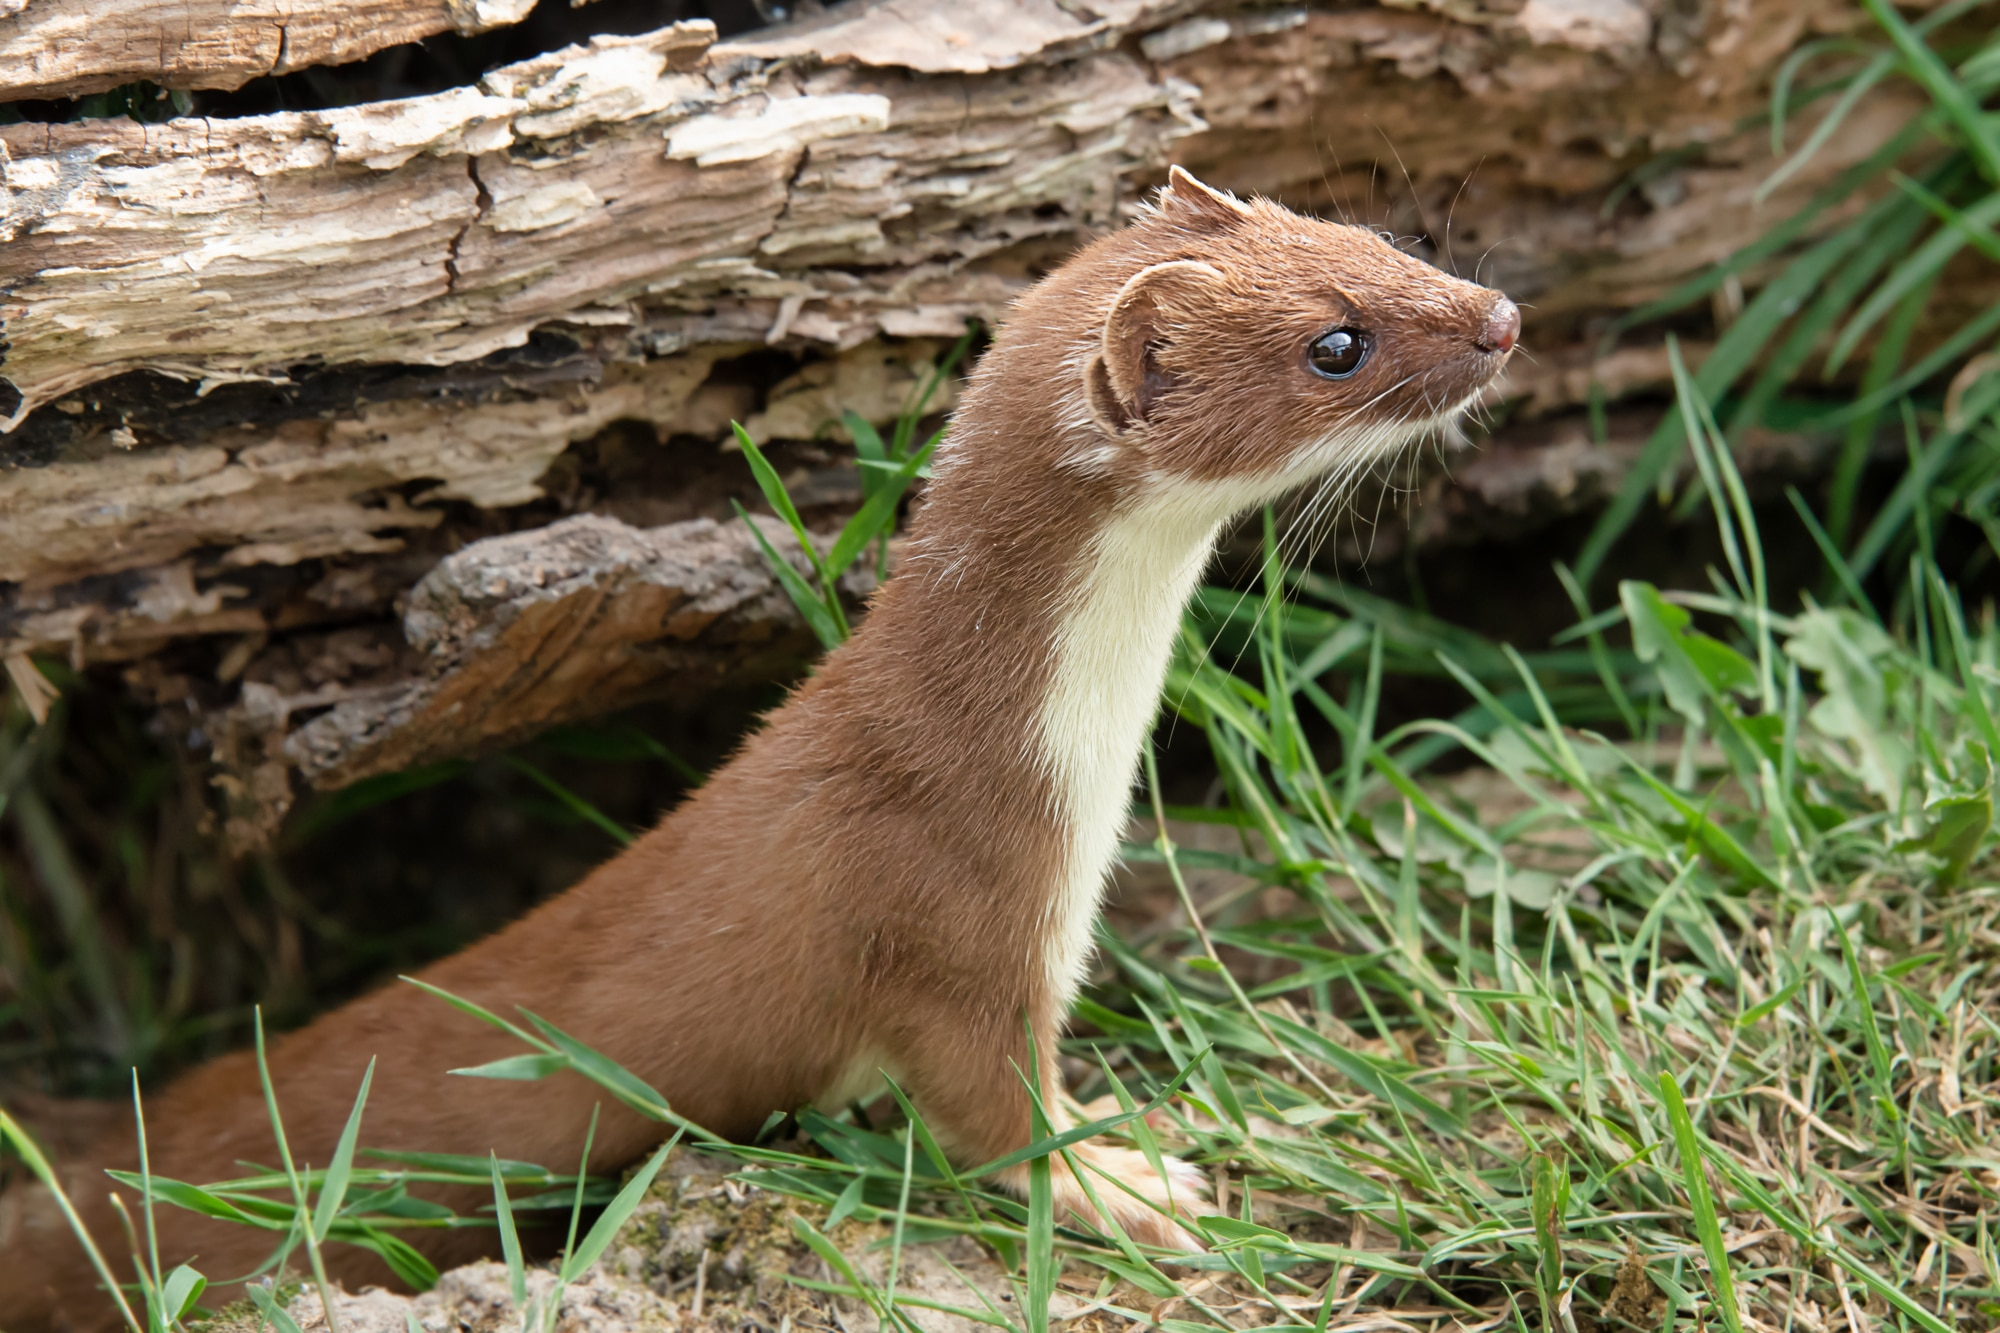 Weasel coming out of its shelter